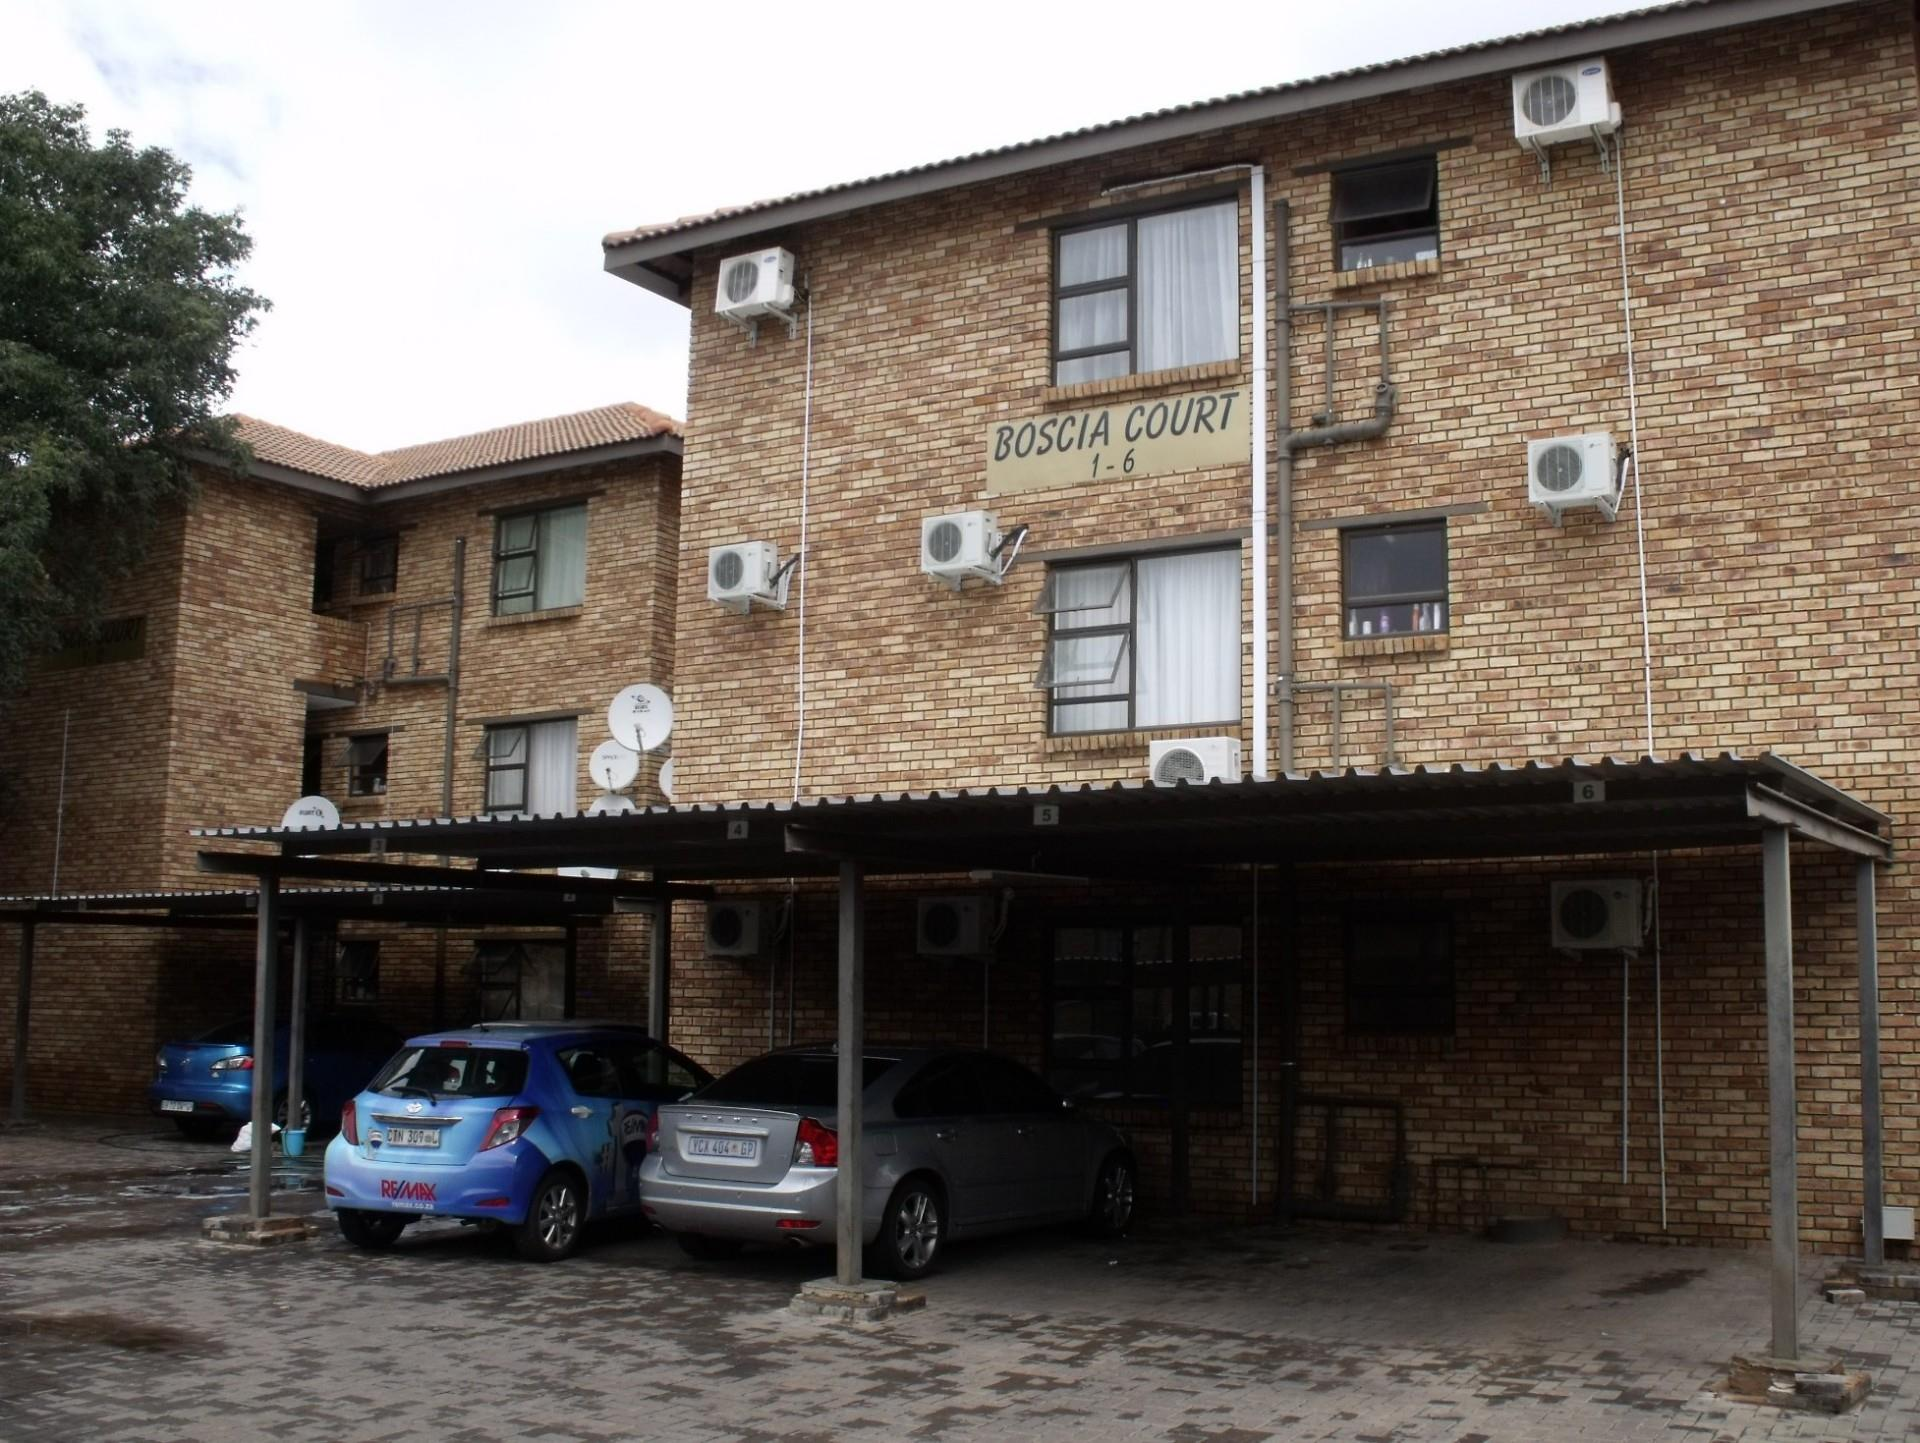 3 Bedroom Apartment / Flat To Rent in Lephalale